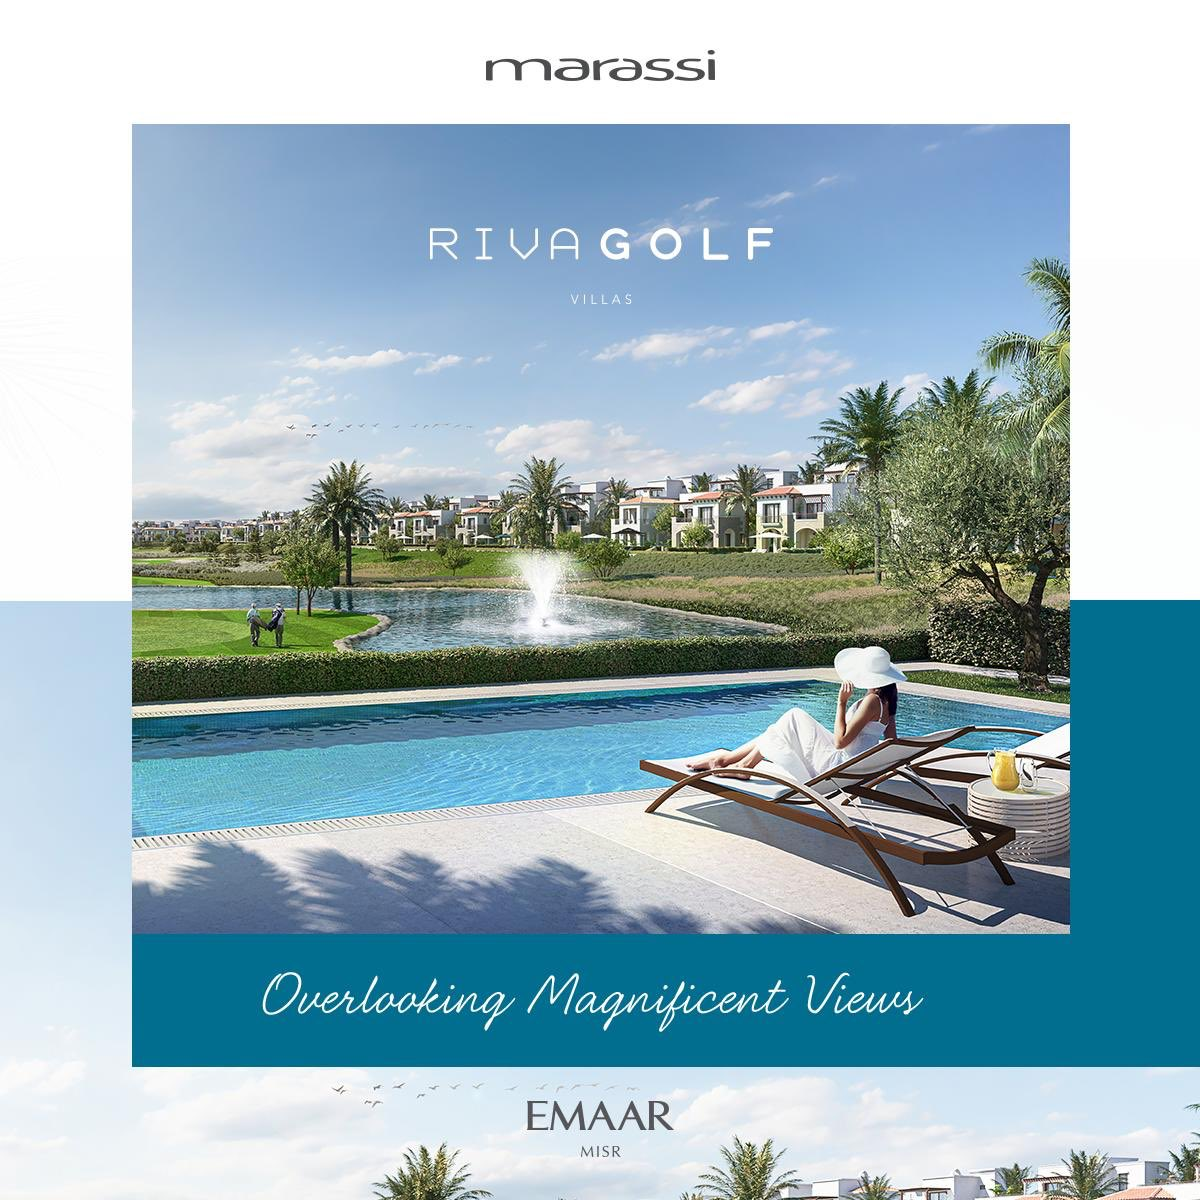 Surround yourself with vibrant views at Riva Golf, featuring fully finished homes overlooking Marassi's lush golf course. Own your home now! #Emaar #EmaarMisr #Marassi https://t.co/I903avi31W